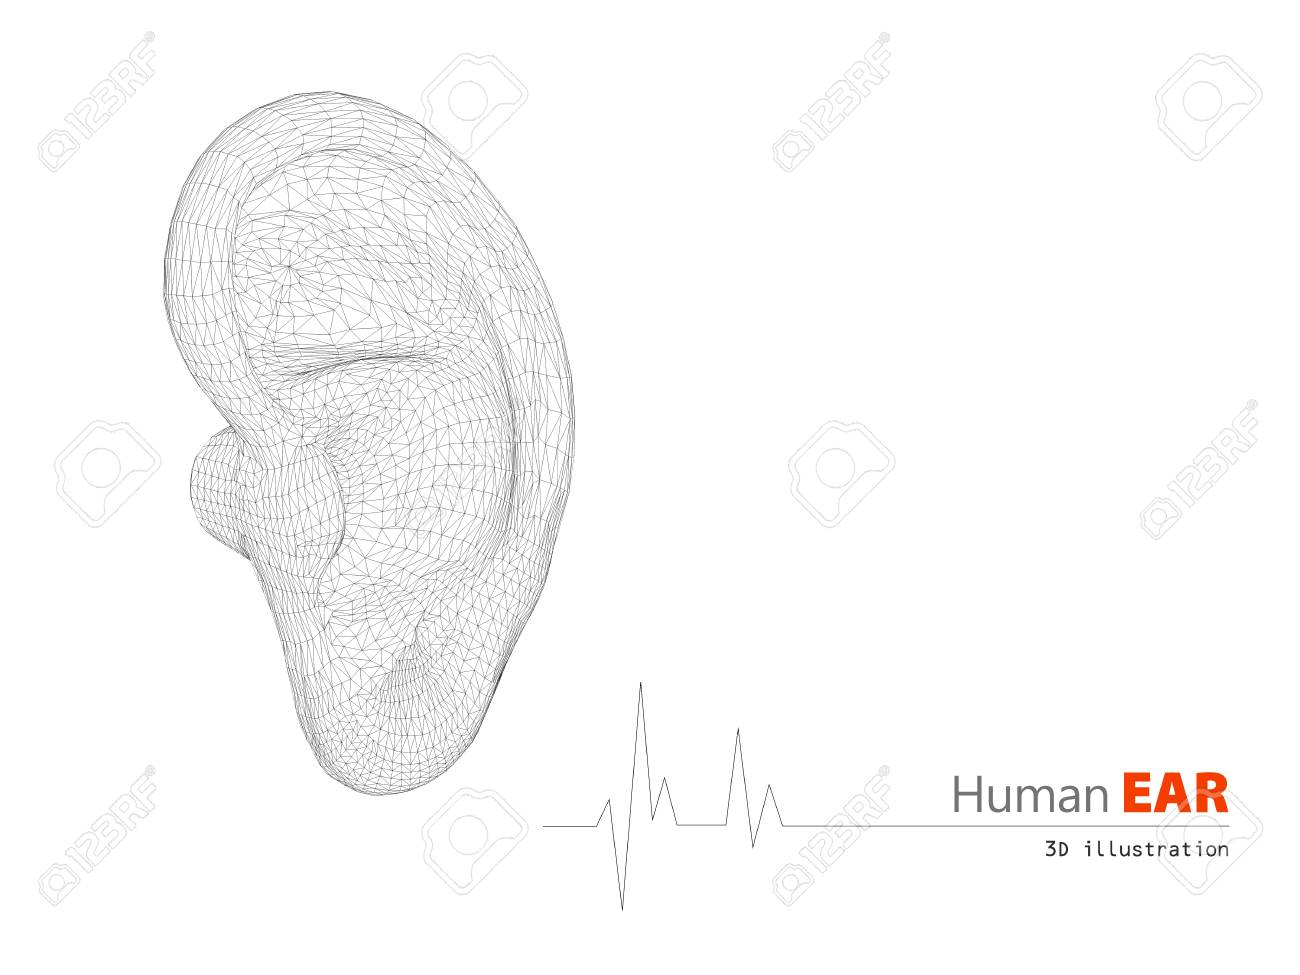 hight resolution of 3d illustration of human ear abstract scientific background stock illustration 69526248